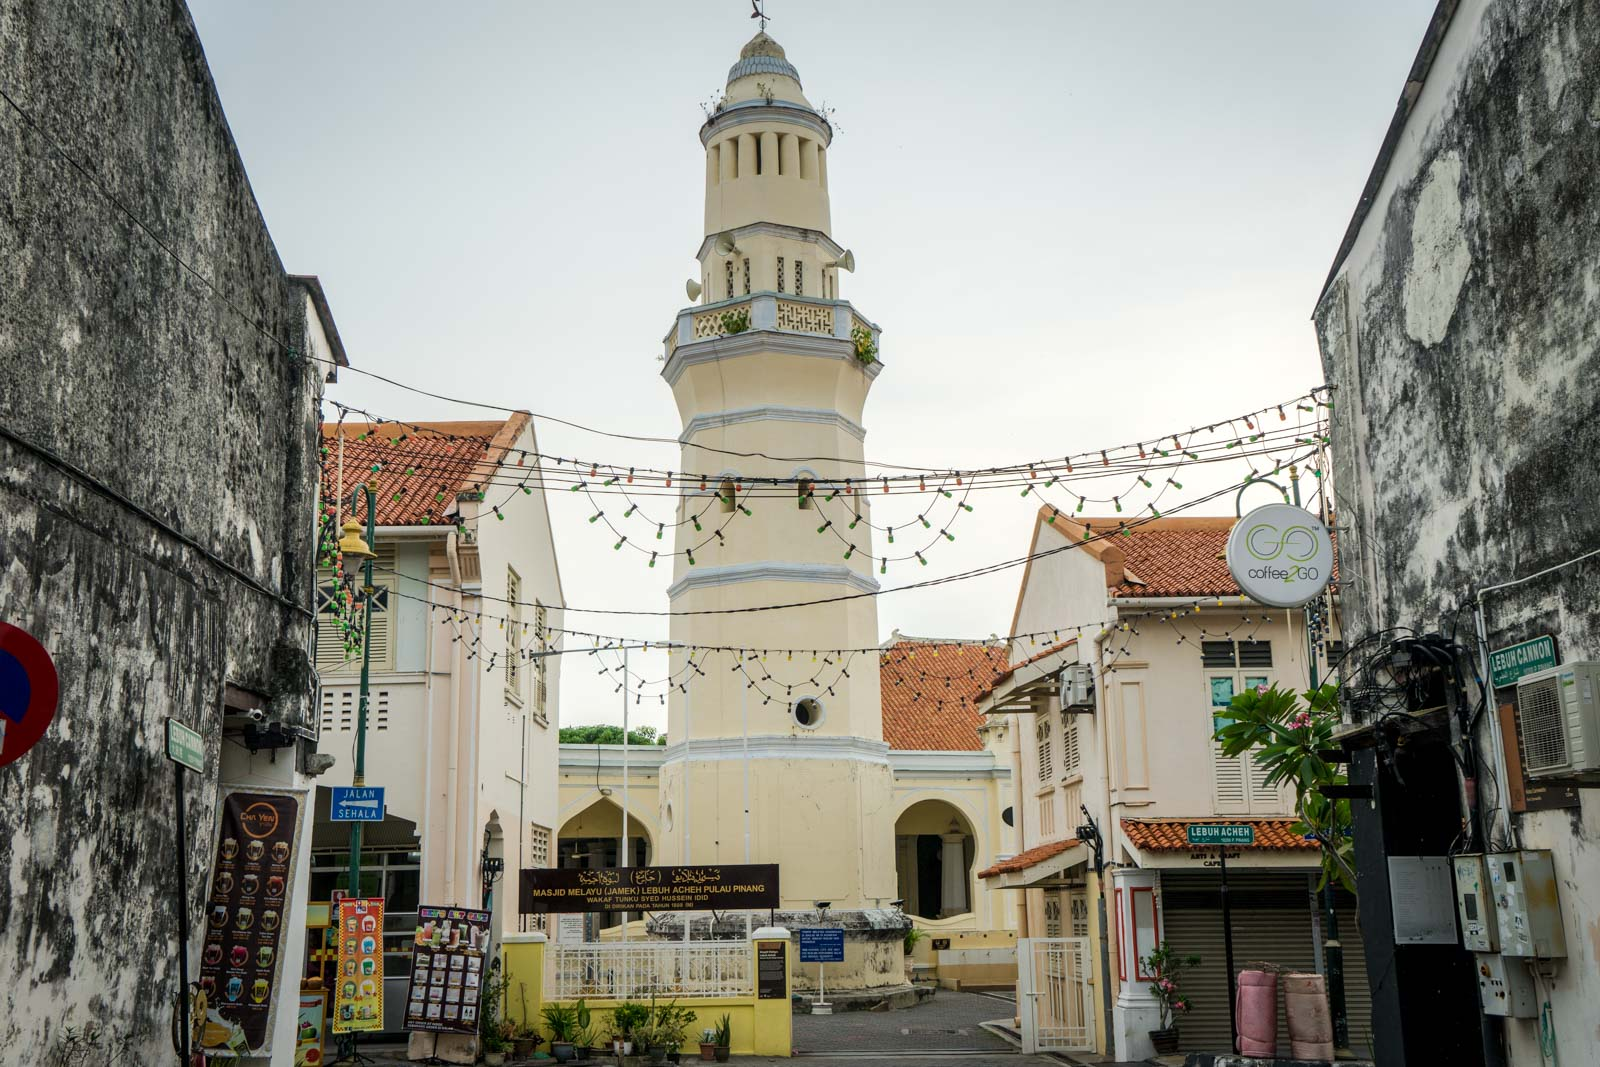 Heritage Trail, George Town, Penang, Malaysia